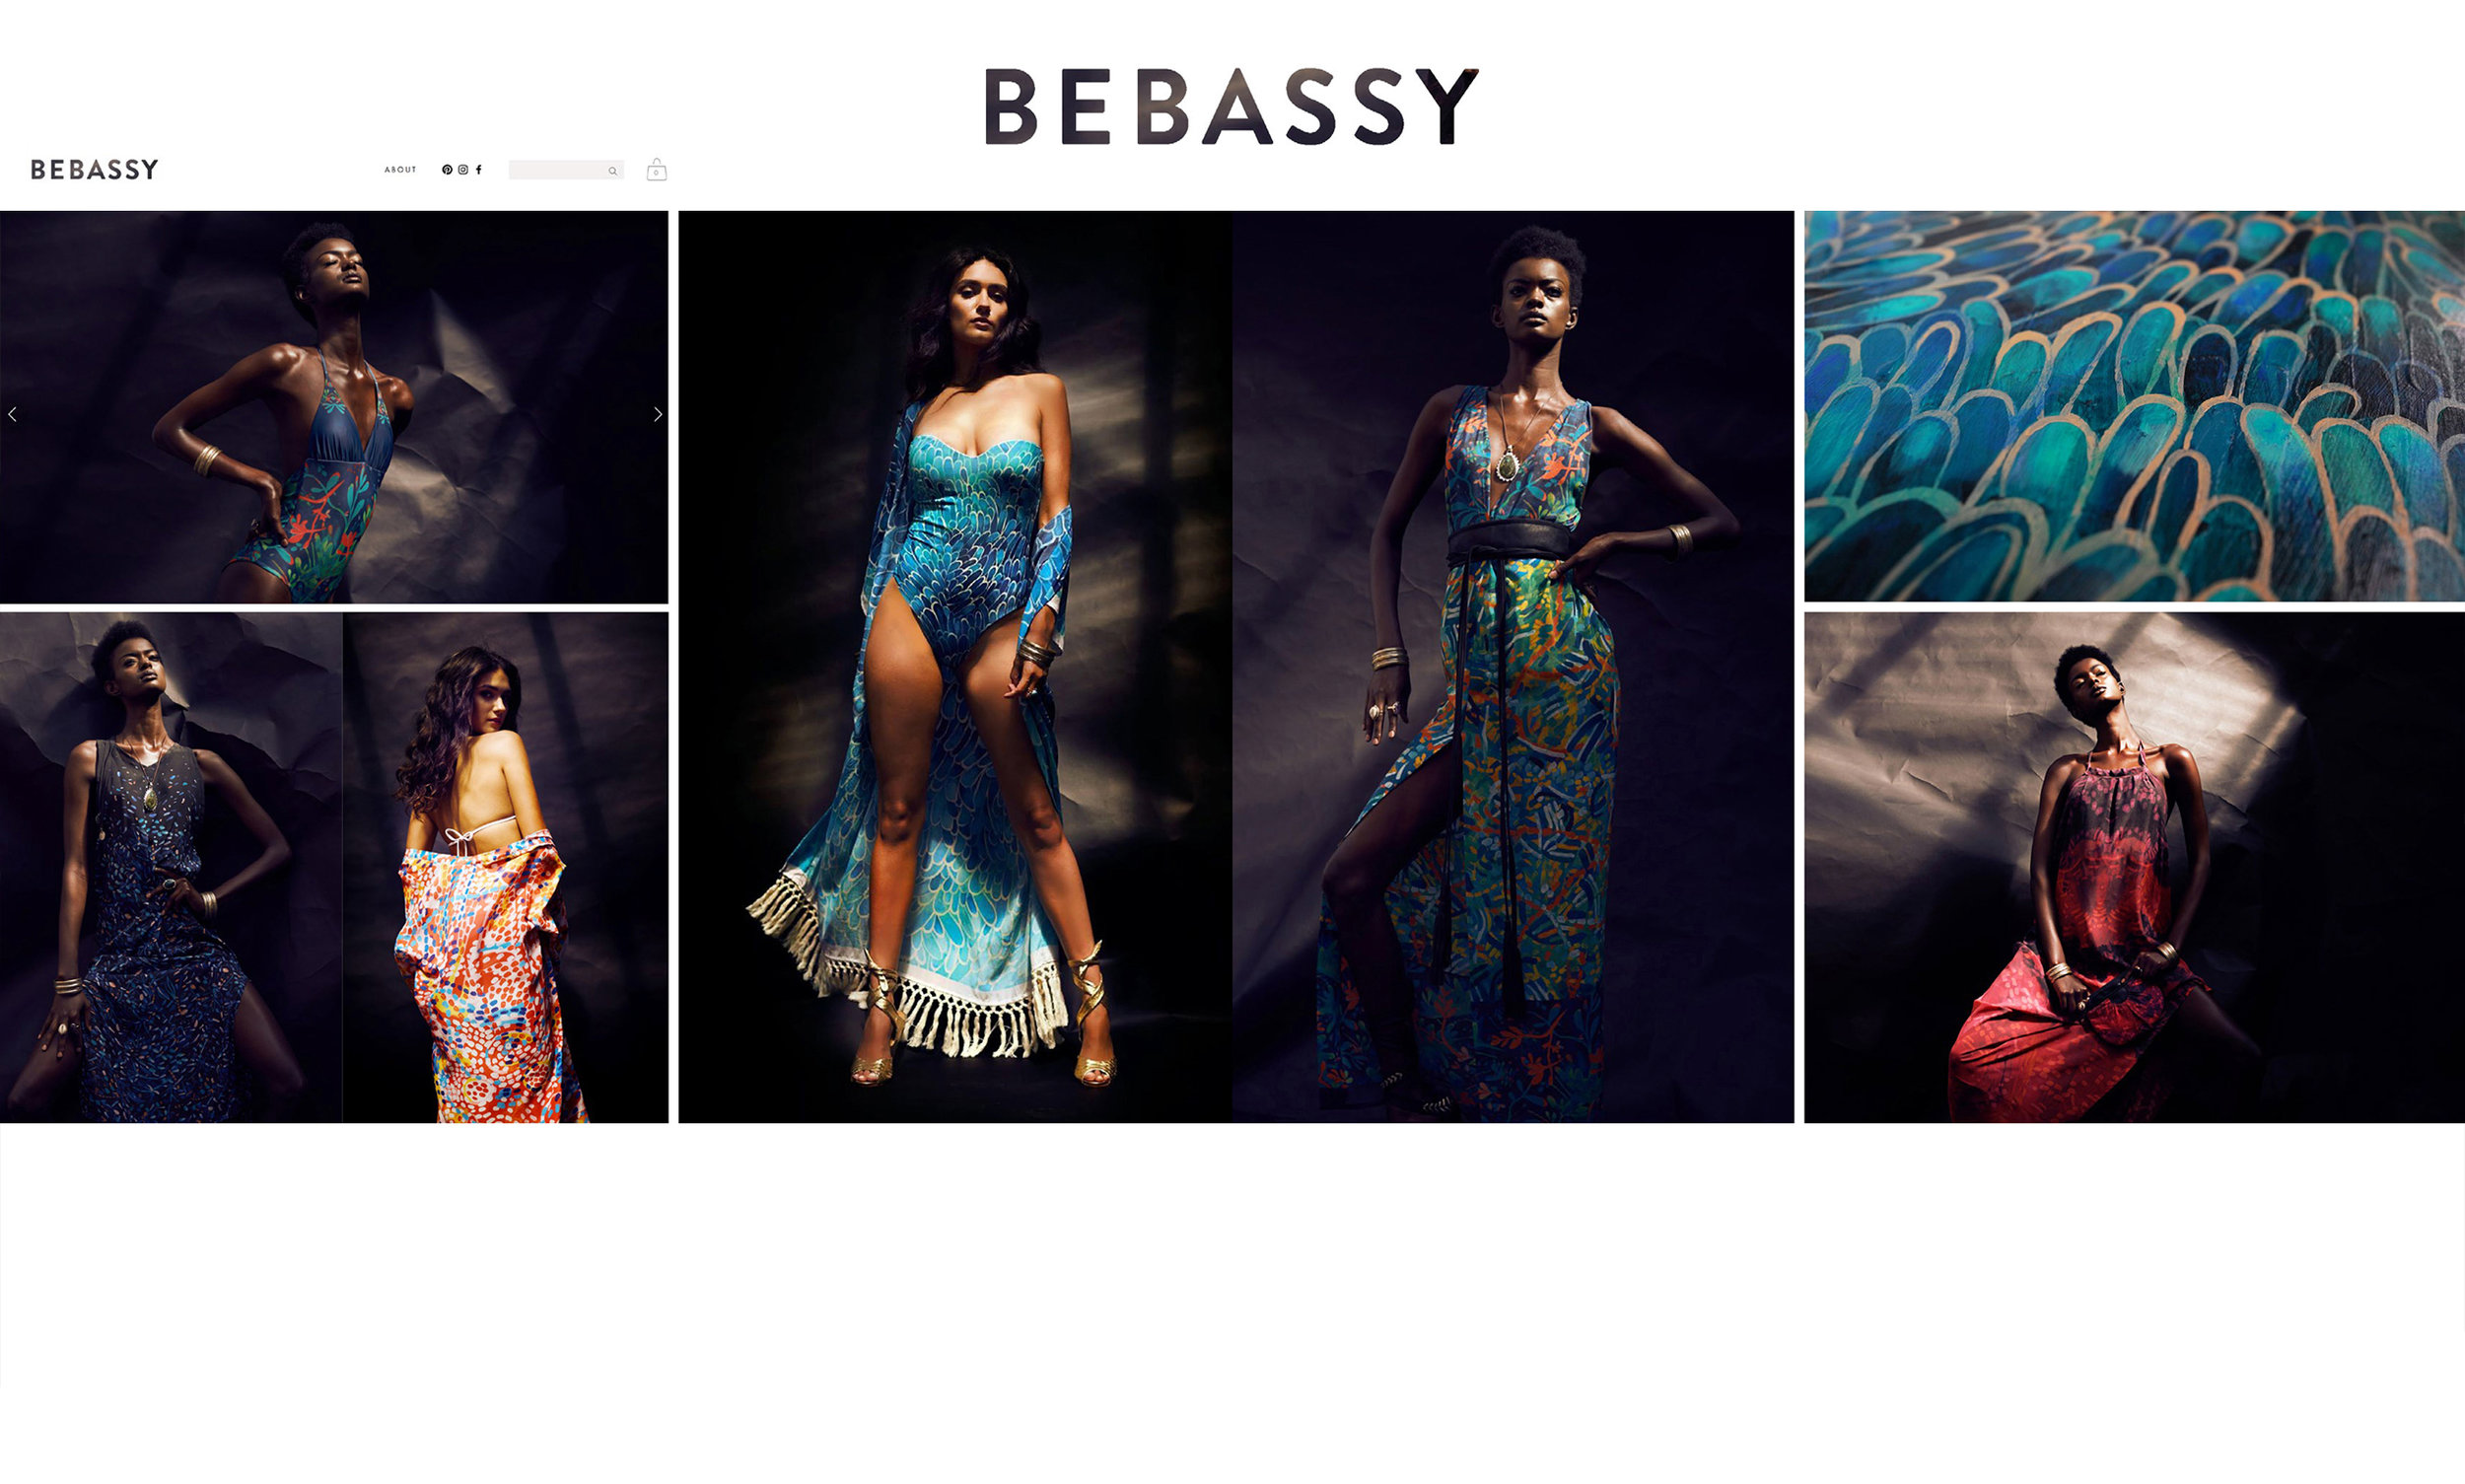 BEBASSY    Sustainable fashion label creation and branding. Launches 2018  Heidi Green: Creative Director